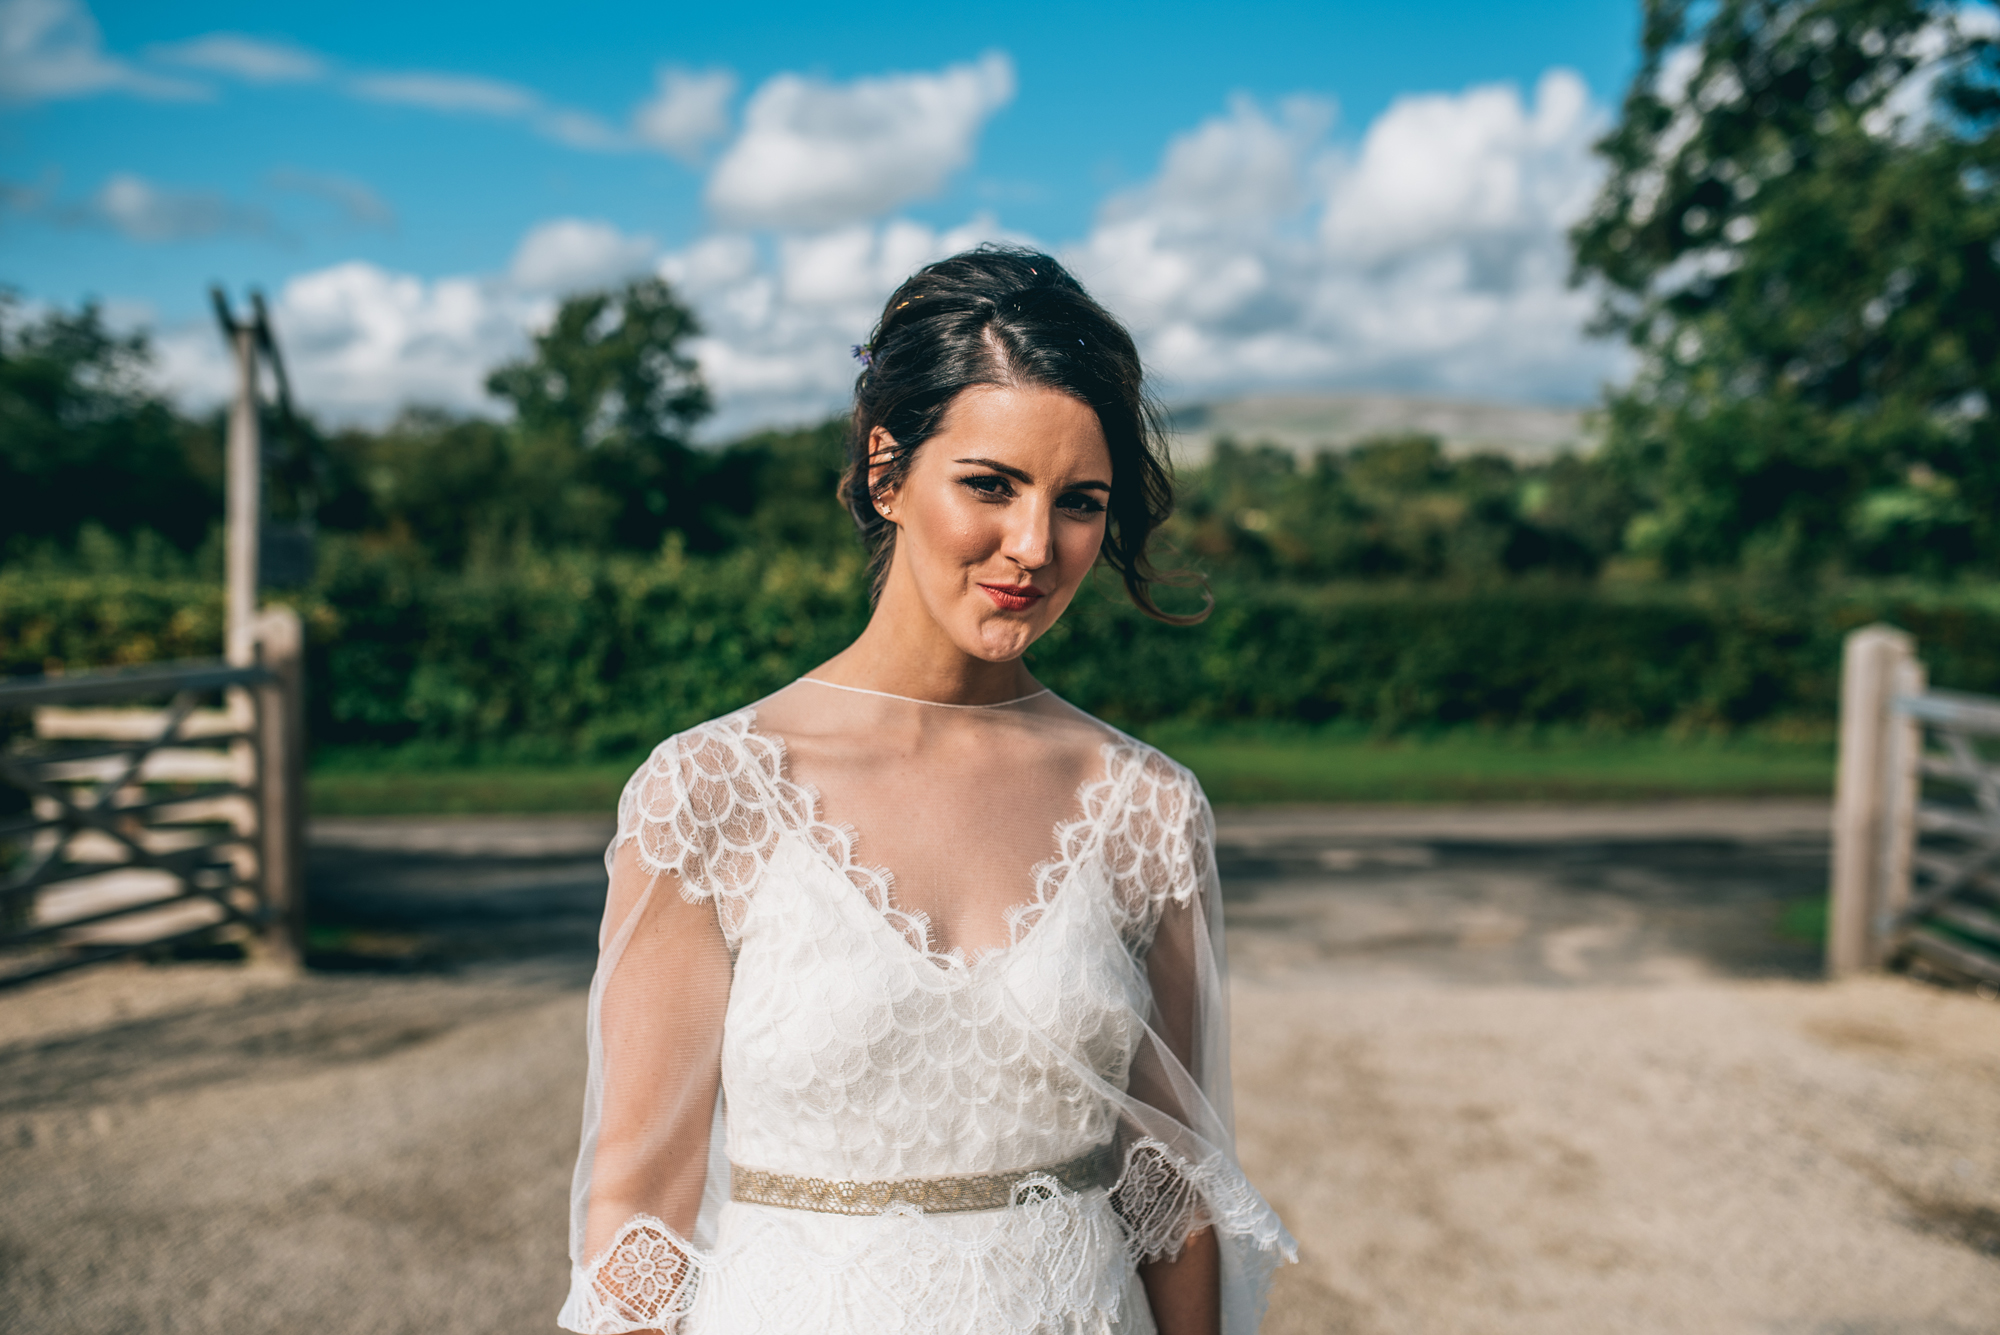 Kate-Beaumont-Sheffield-Lucy-Bohemian-Lace-Dress-Barn-Wedding-Cumbria-35.jpg